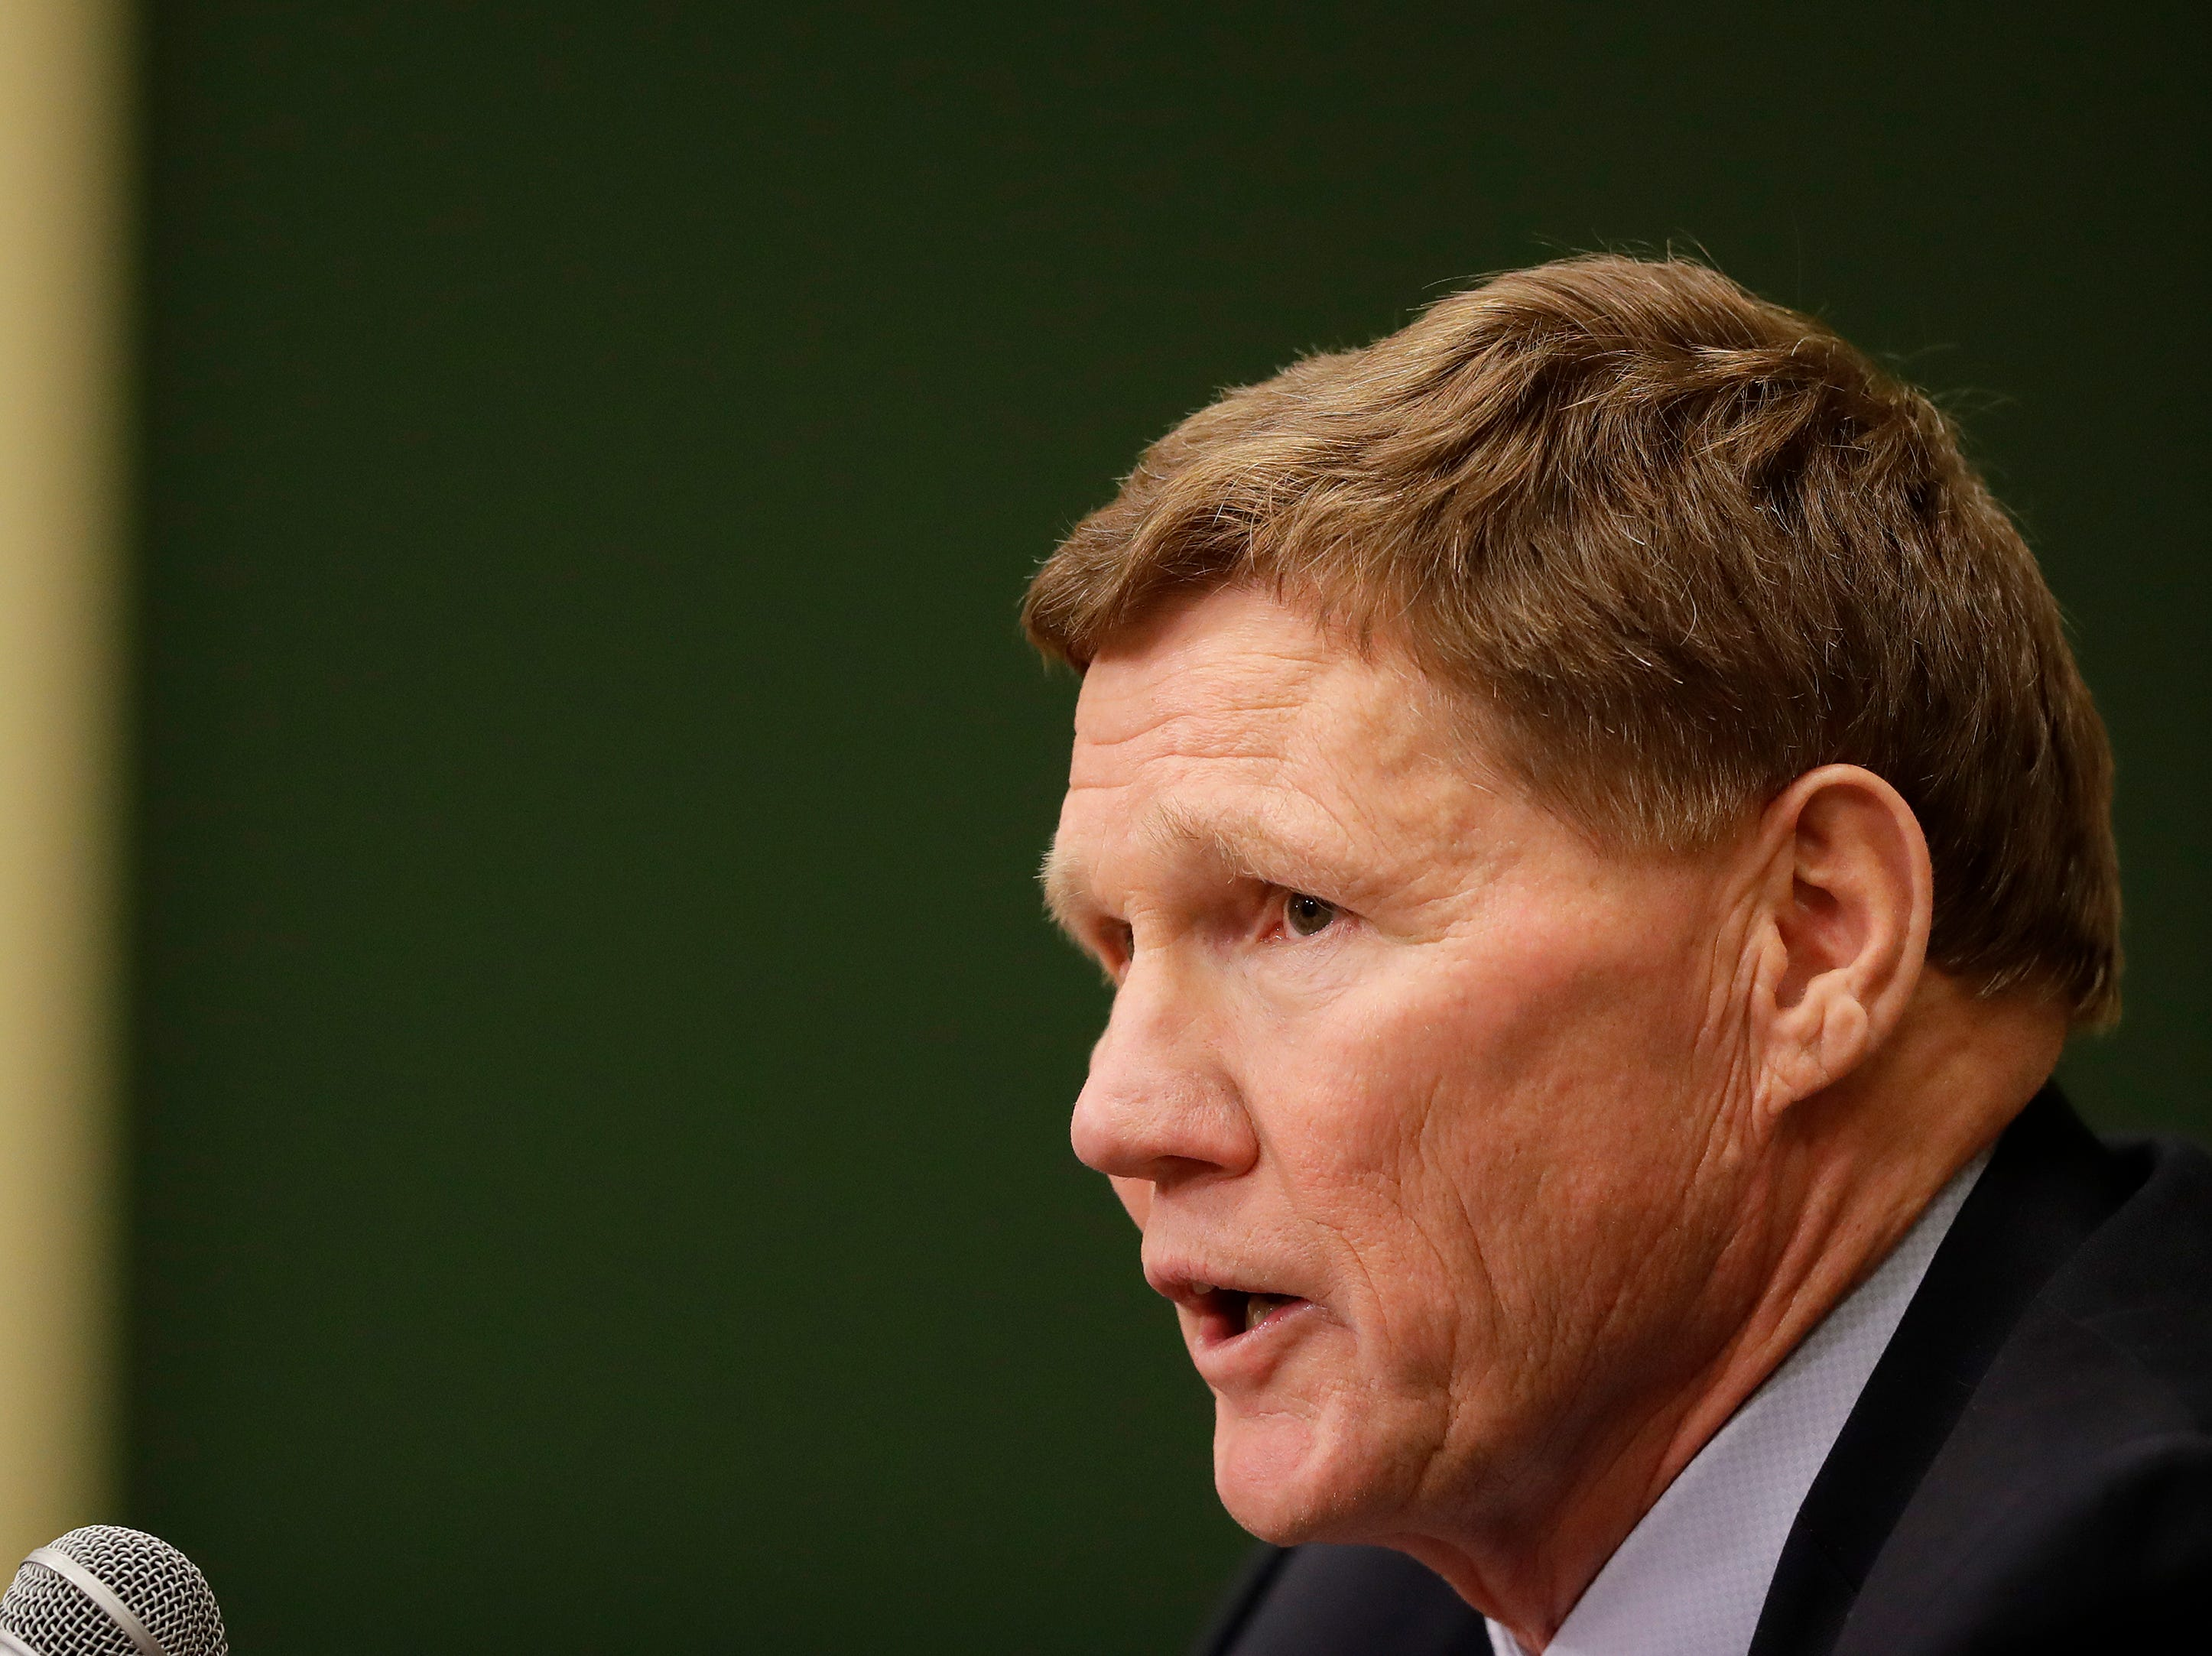 Green Bay Packers President and Chief Executive Officer Mark Murphy speaks at a press conference at Lambeau Field on Monday, December 3, 2018 in Green Bay, Wis.